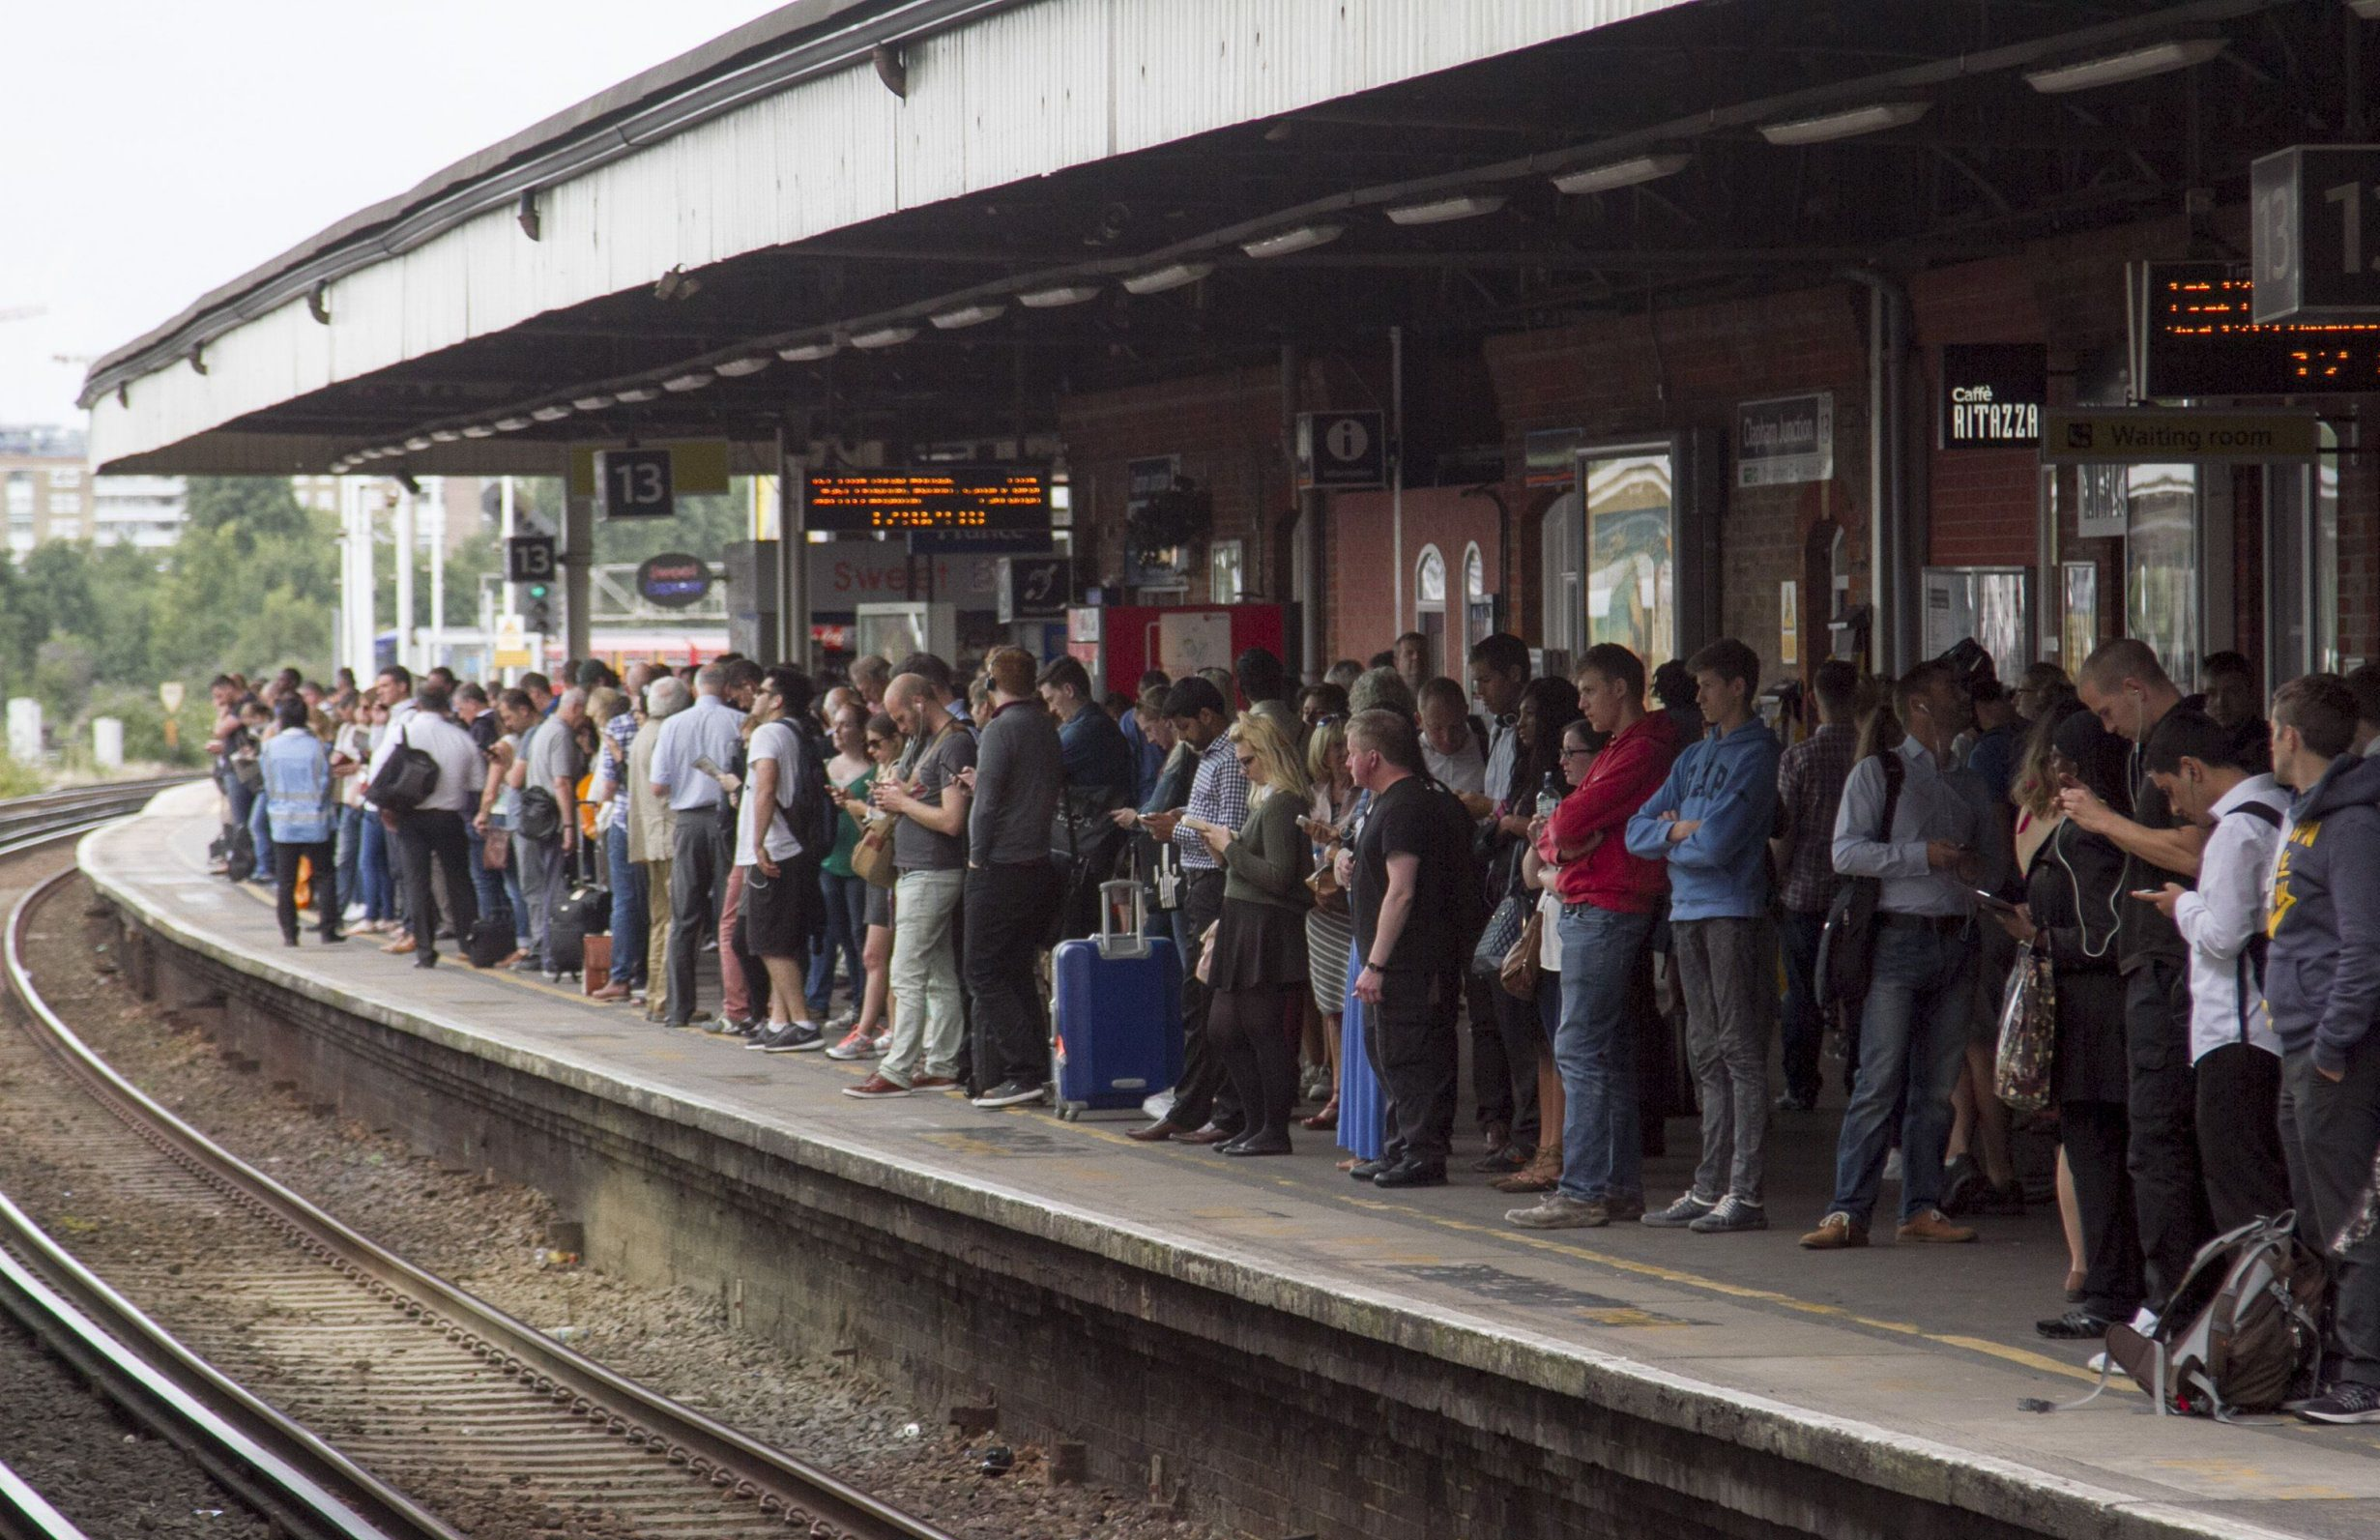 Misery for Southern Rail passengers on second day of strike